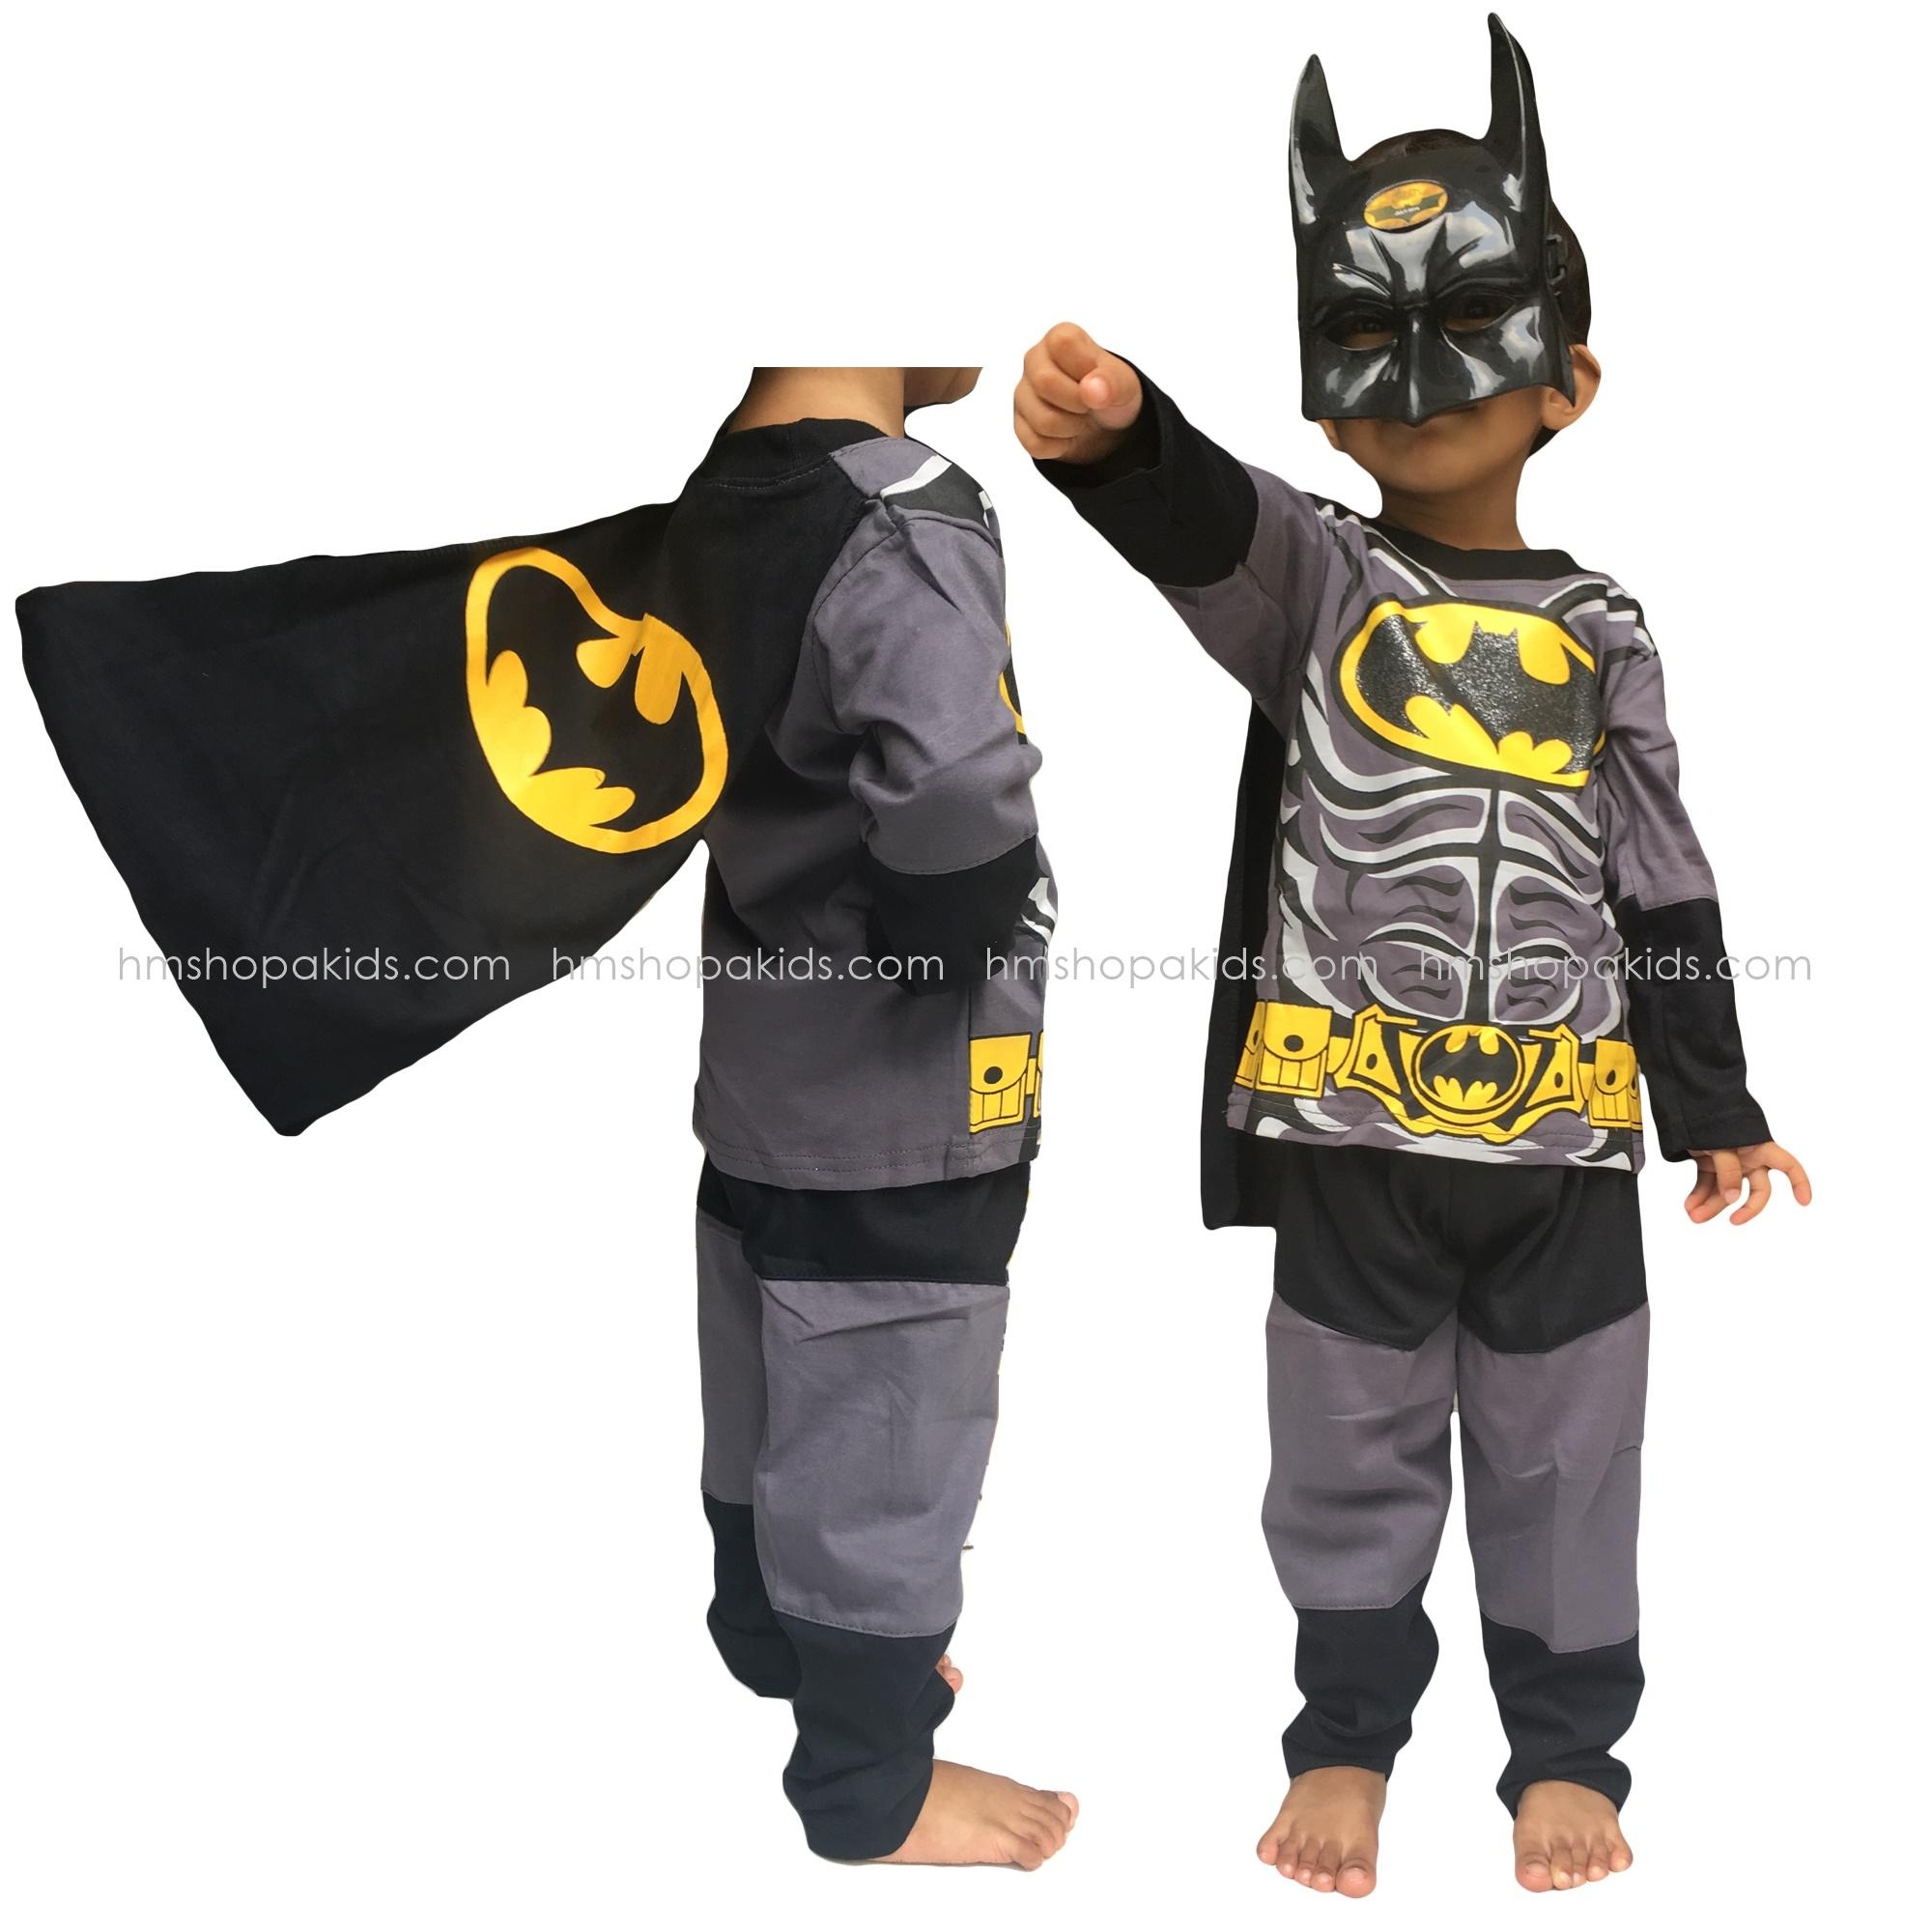 Hm Baju Kostum Anak Batman Topeng Baju Setelan Anak Batman By Hm Shopa Collection.